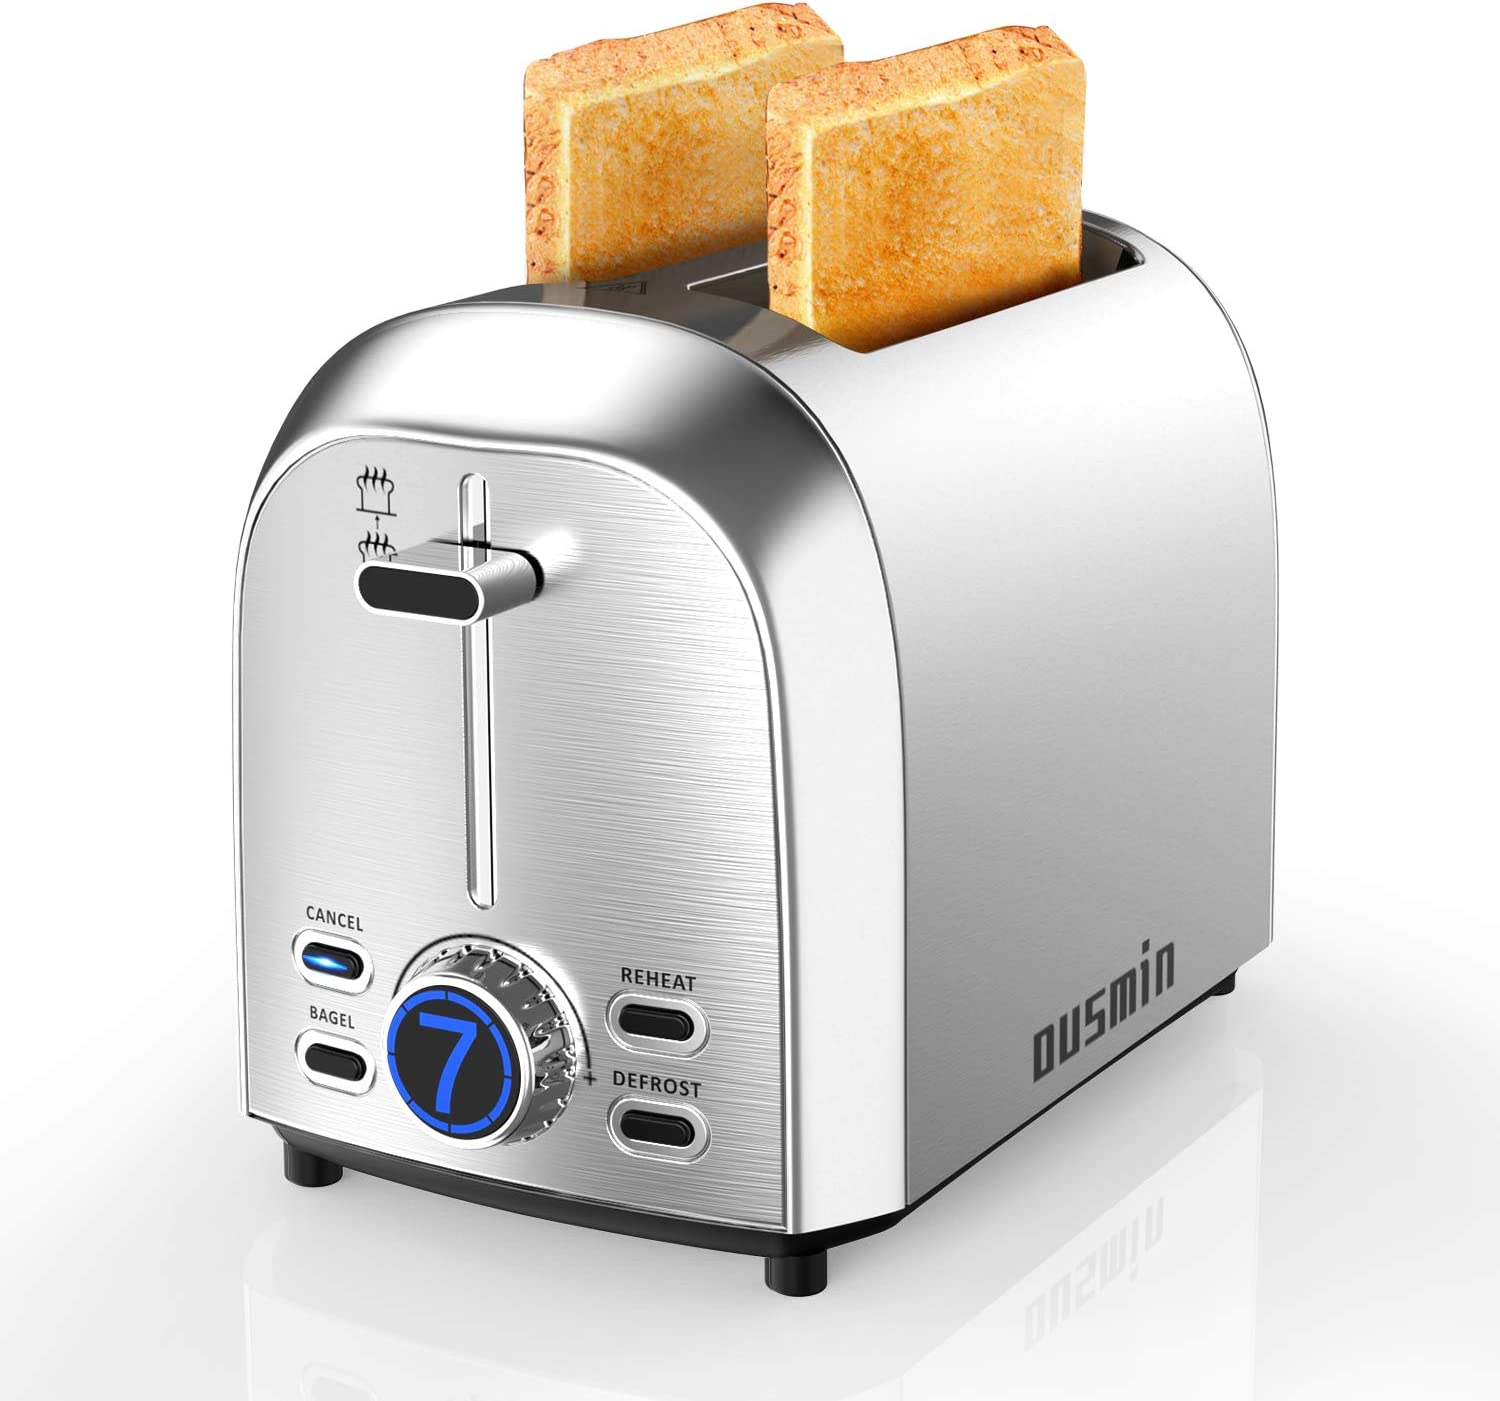 2 Slice Toaster LED Timer Display, OUSMIN 7 Shade Settings Stainless Steel Toaster with 1.5inch Wide Slot and BAGEL, DEFROST, CANCEL and REHEAT 4 Function, Removable Crumb Tray Compact Toaster